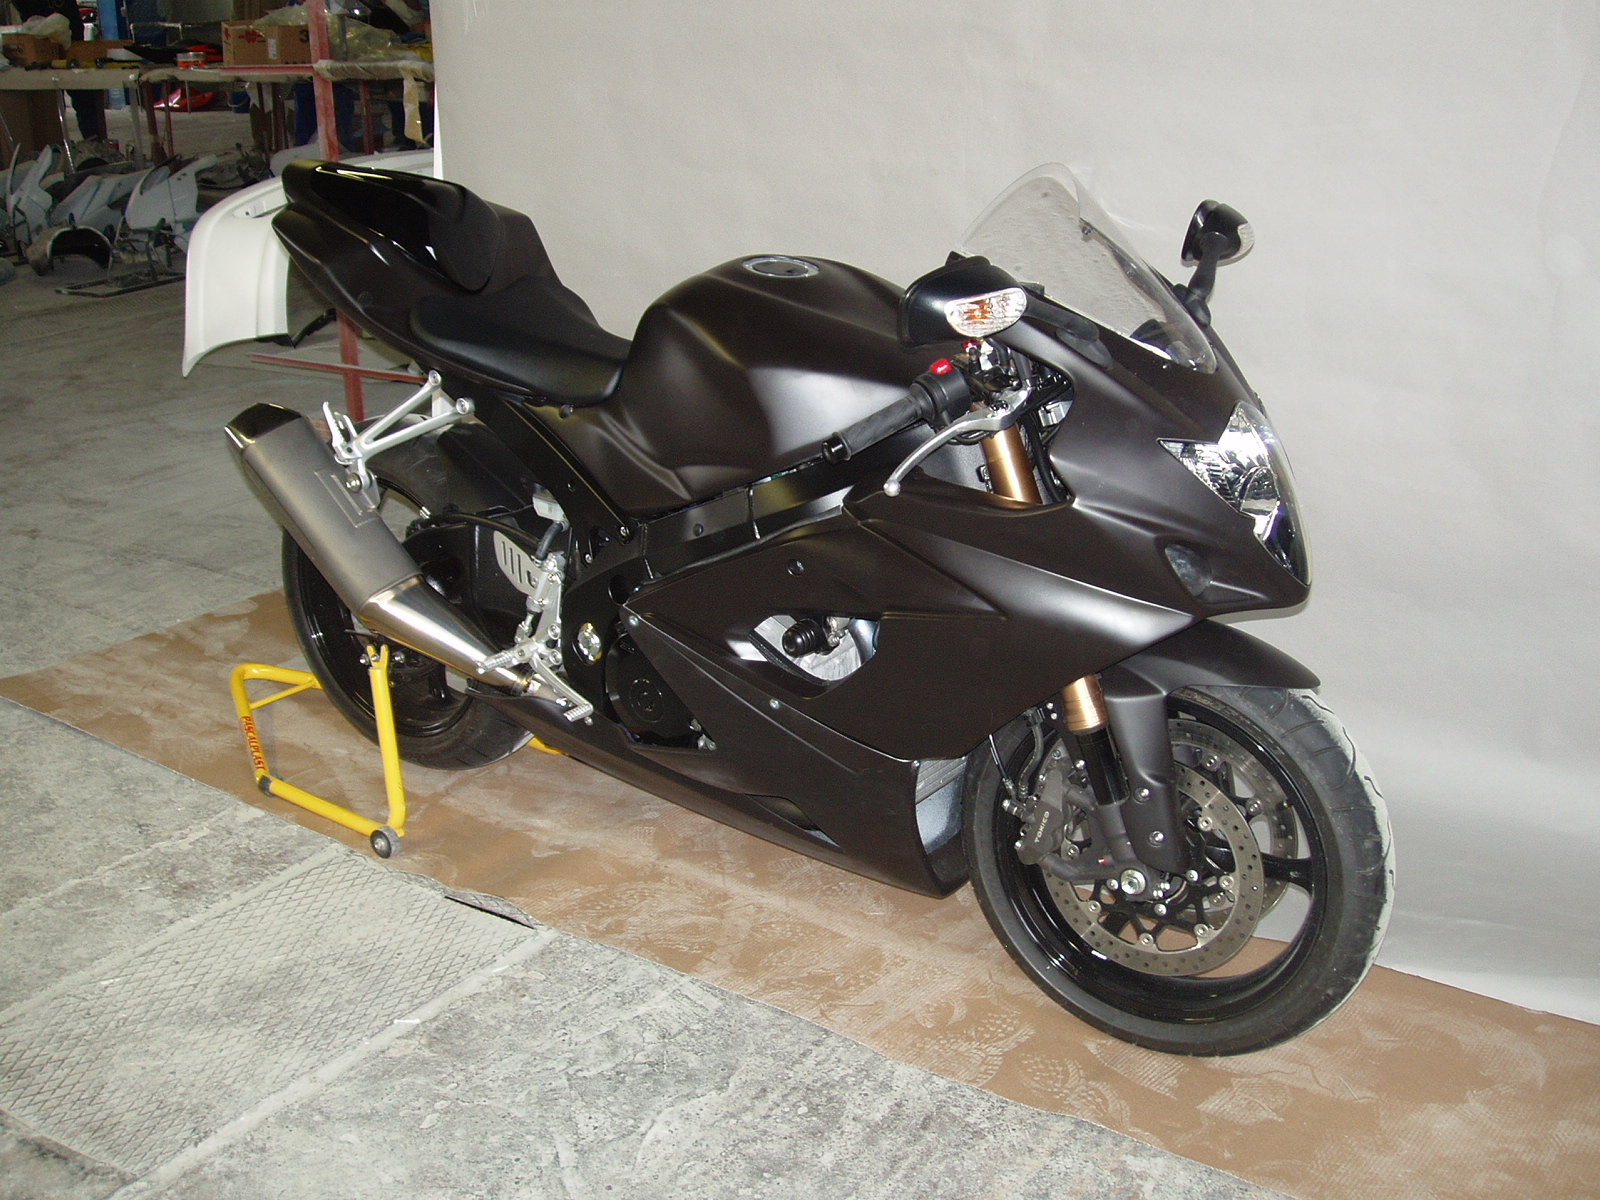 street version (race fairing)